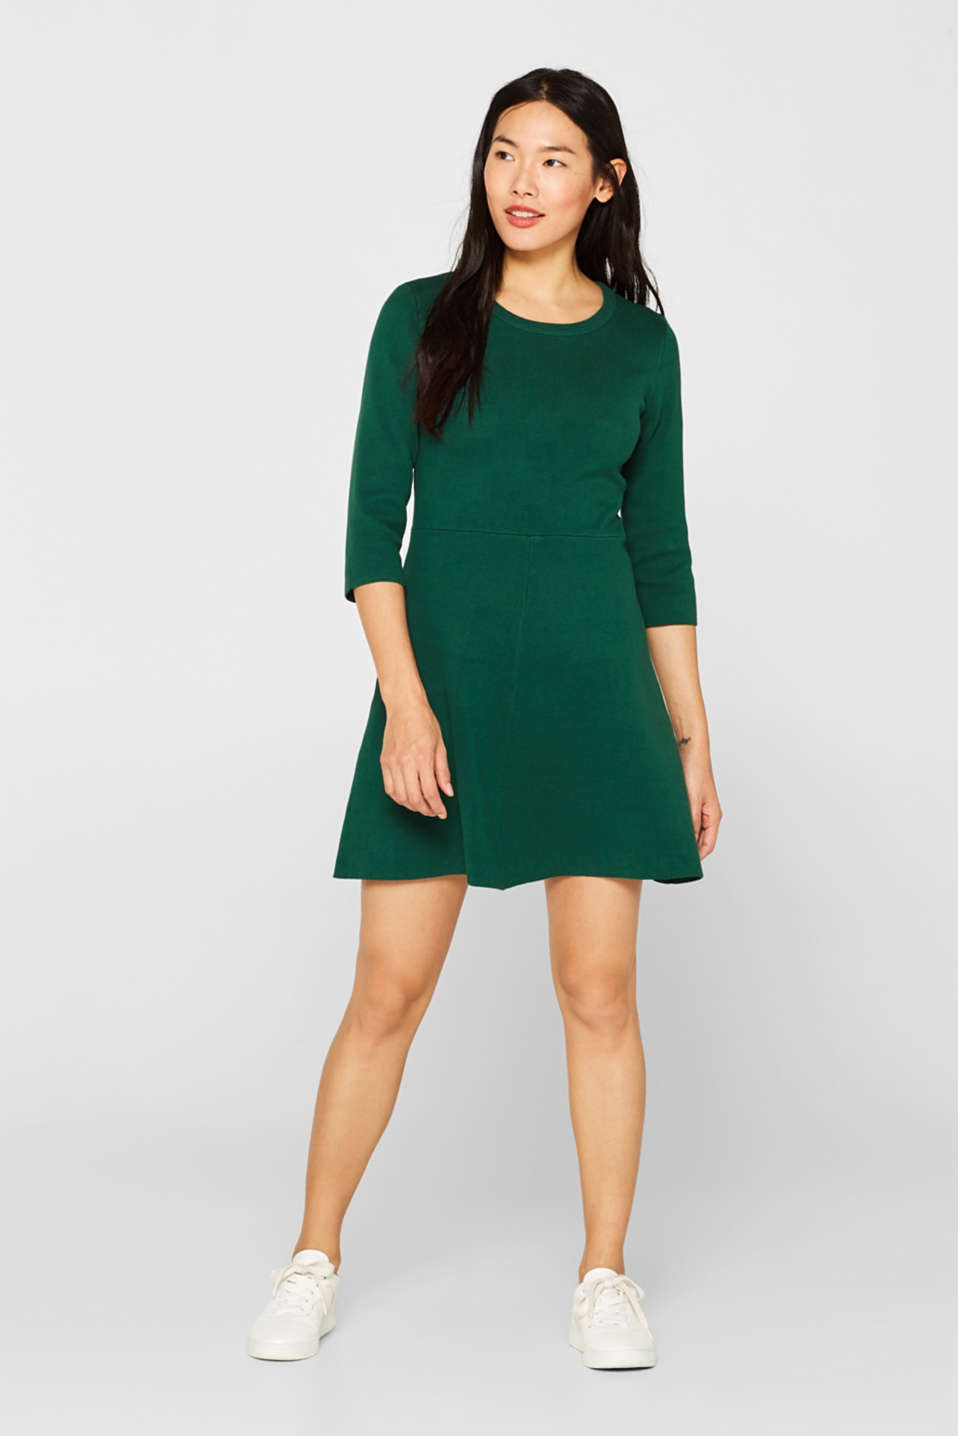 Compact knit dress in an A-line silhouette, BOTTLE GREEN, detail image number 1